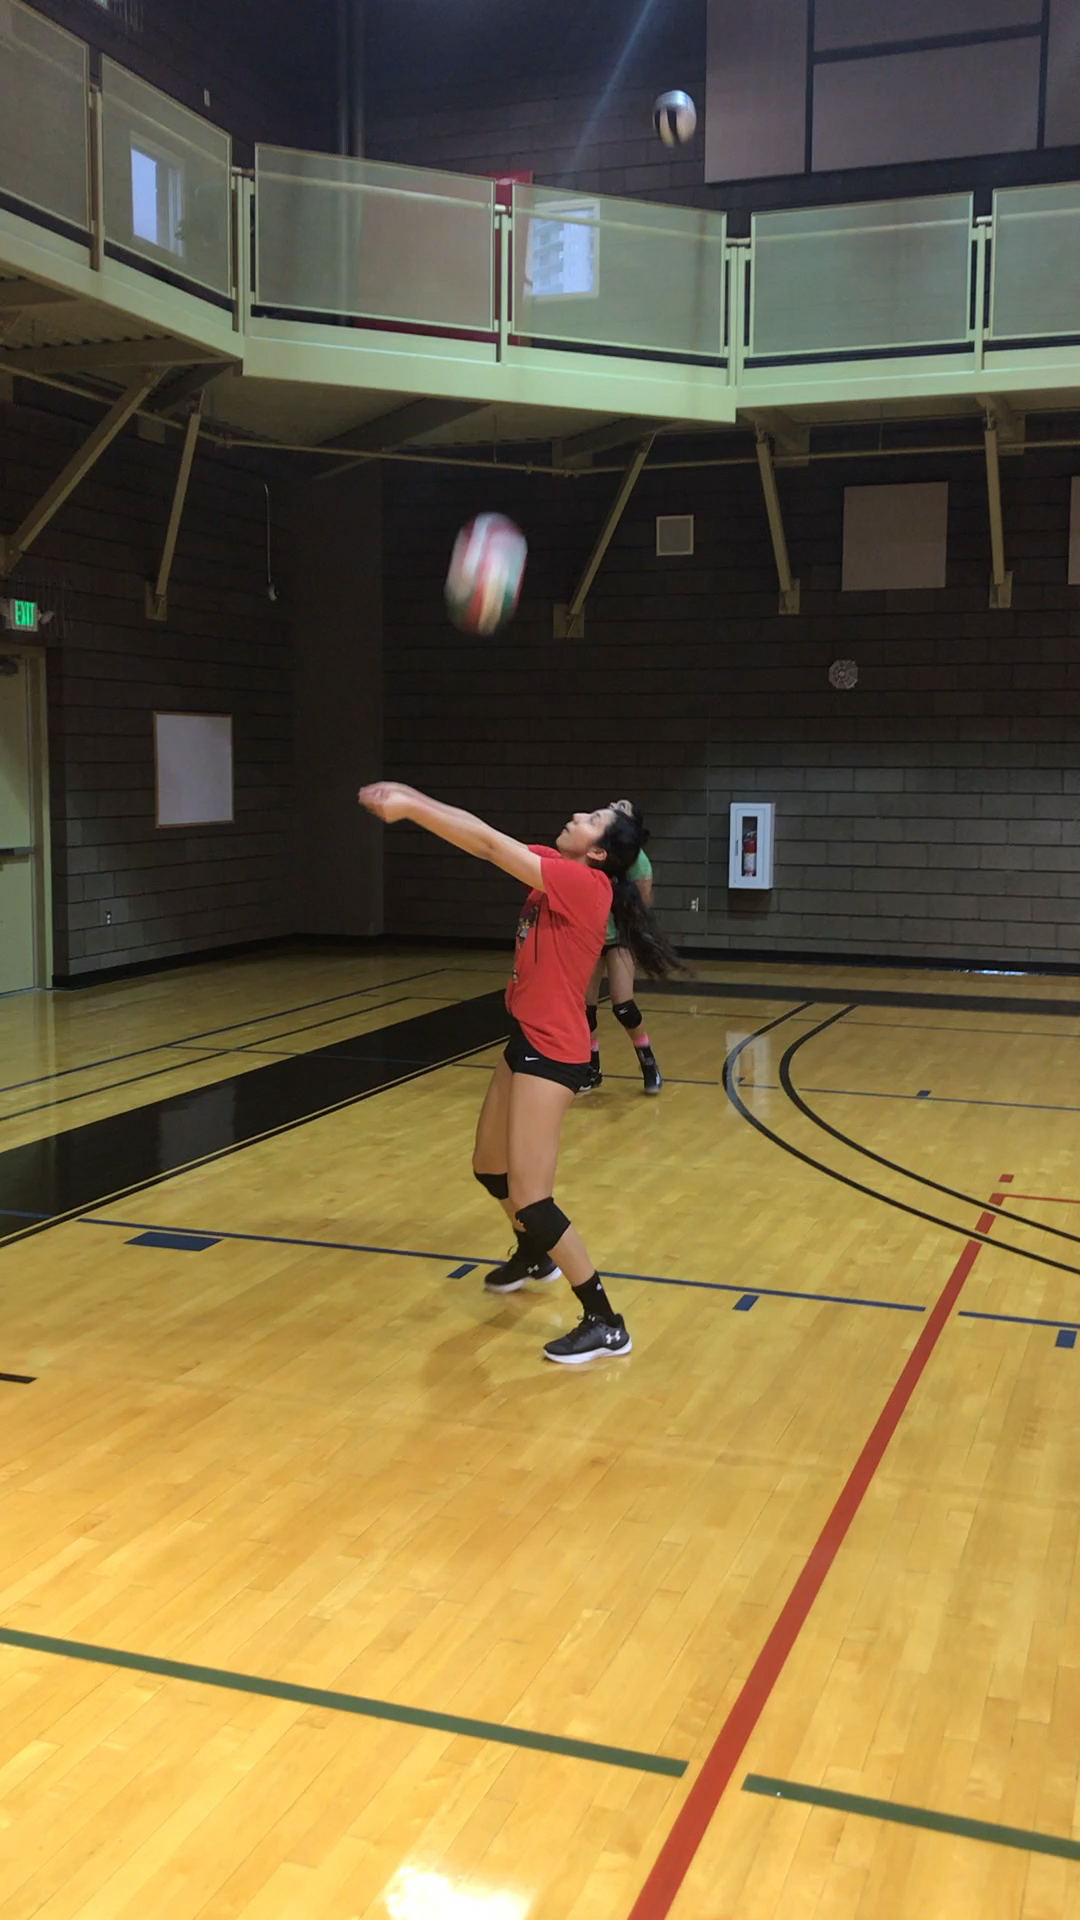 2 Volleyball Passing Drills How To Get Better At Passing In Volleyball Volleyball Workouts Volleyball Tryouts Volleyball Passing Drills